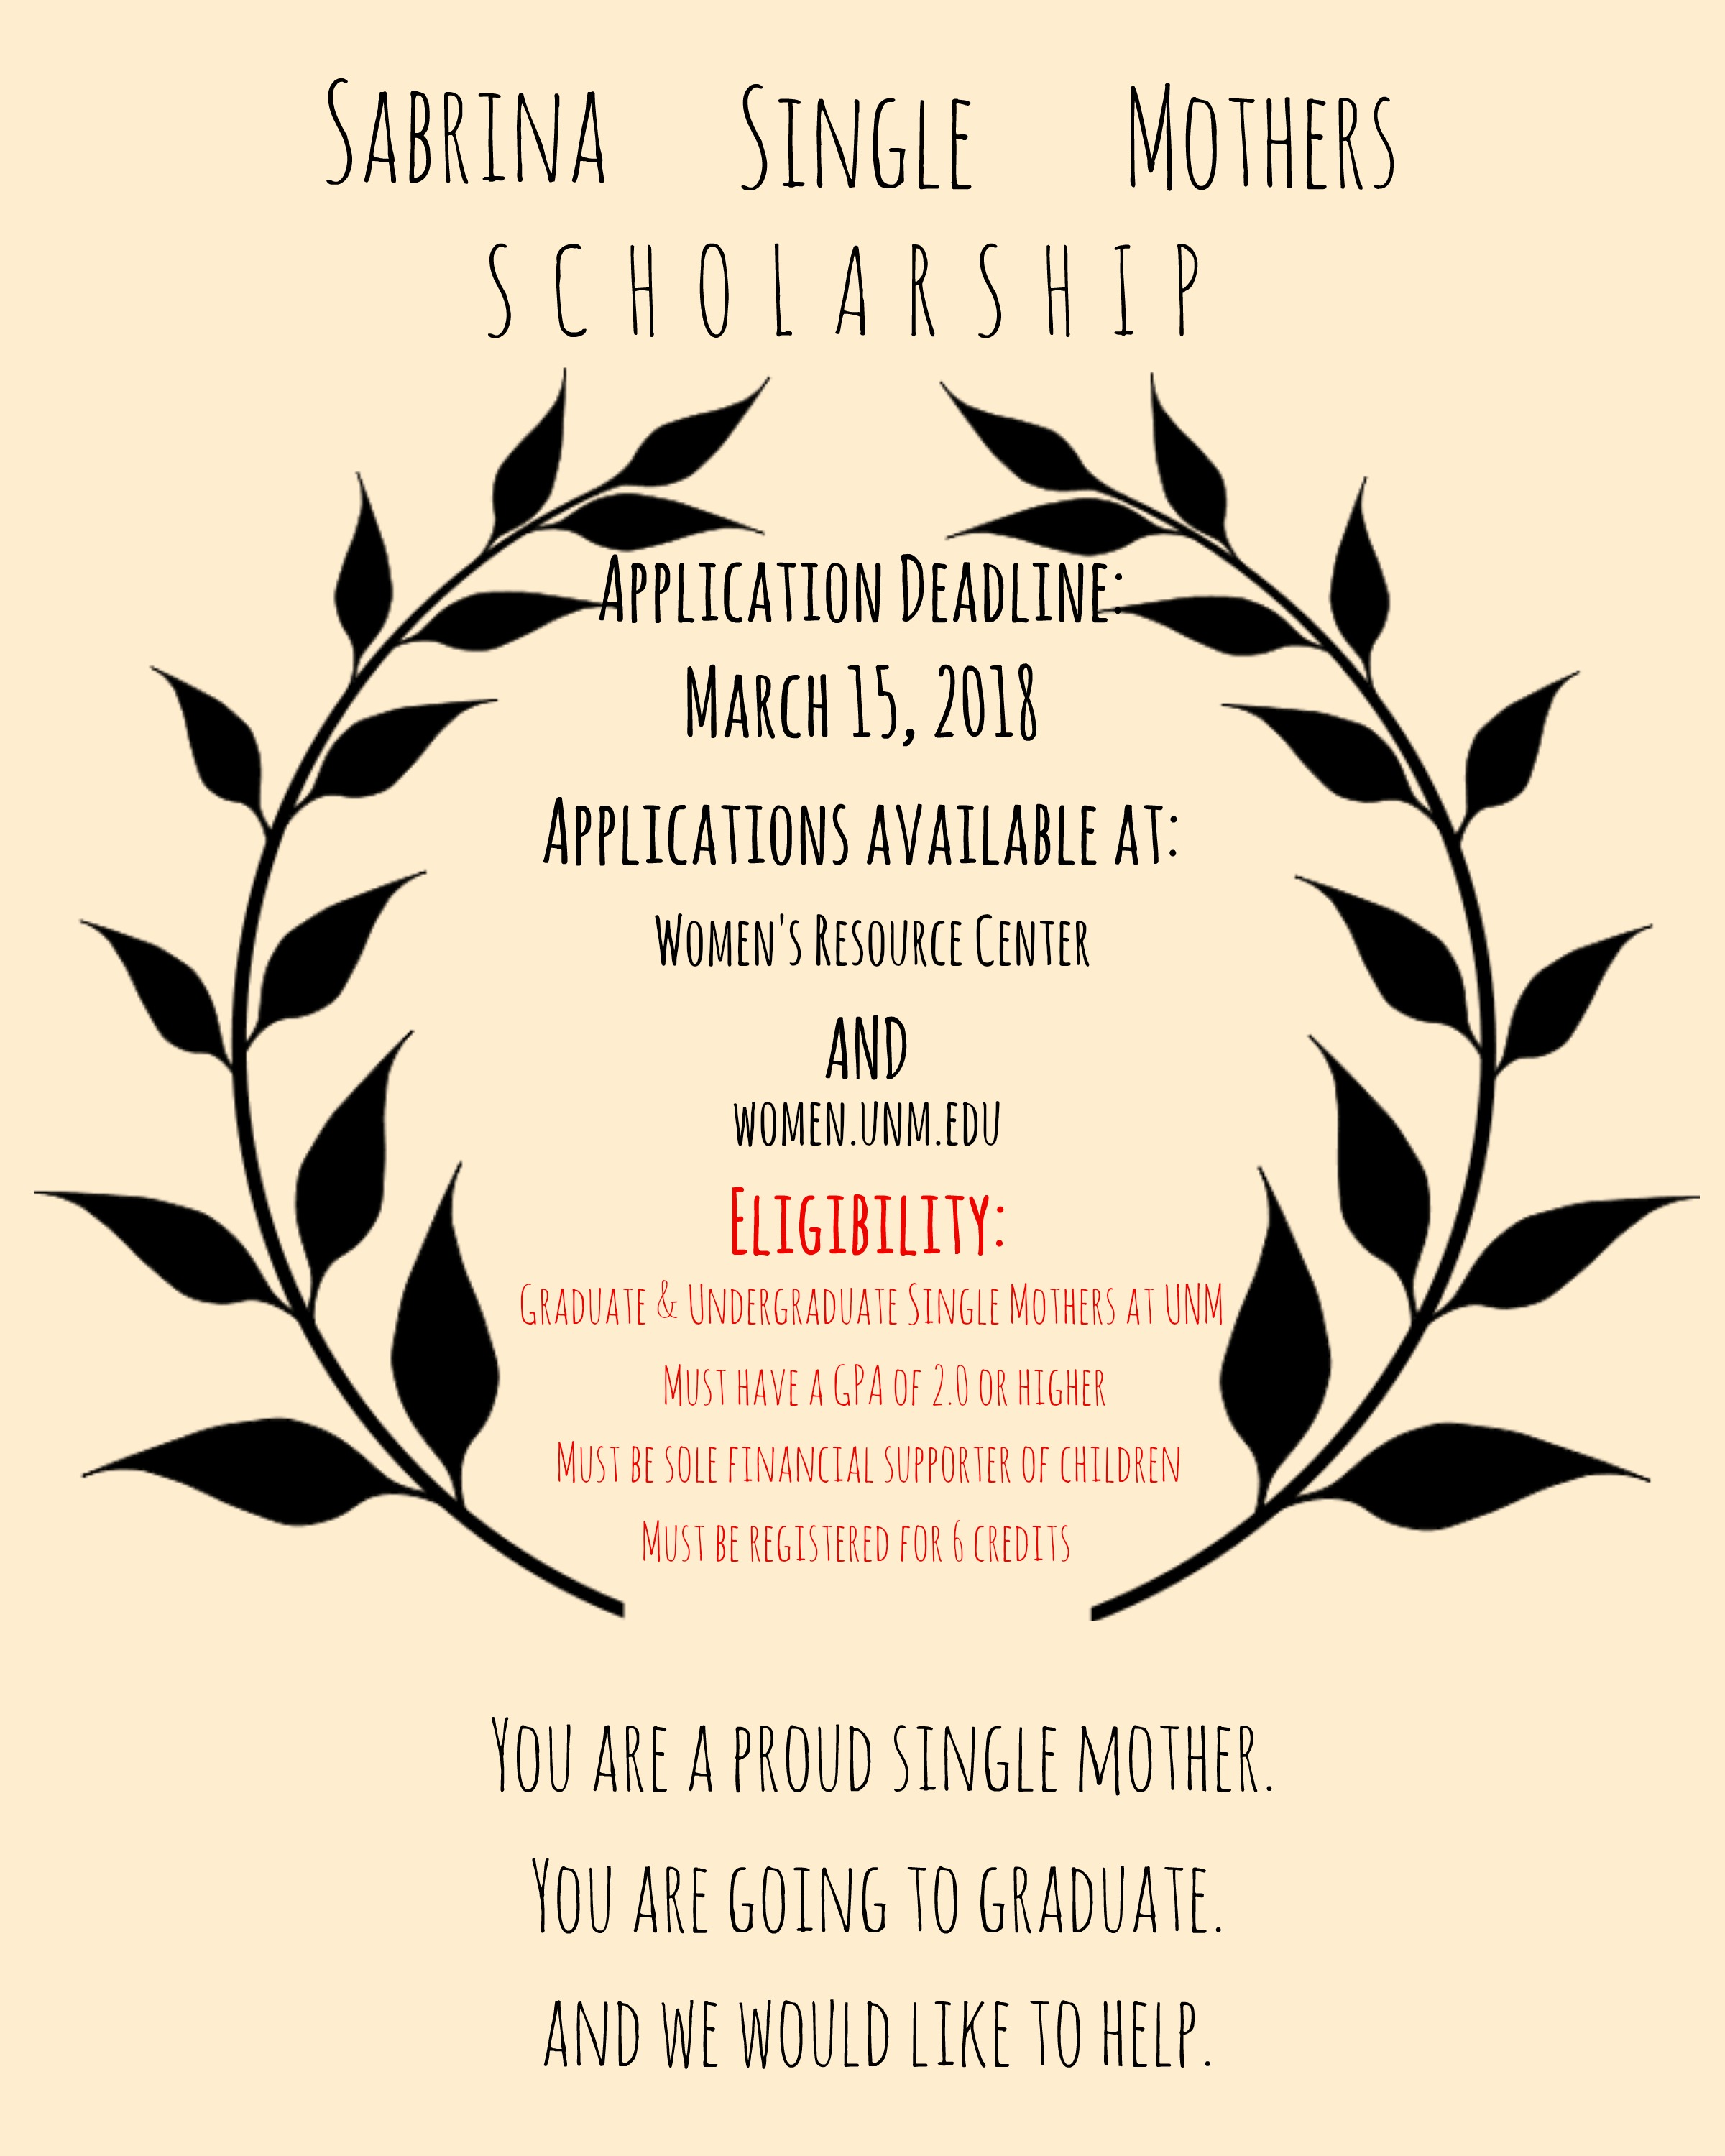 sabrina single mother's scholarship :: women's resource center | the